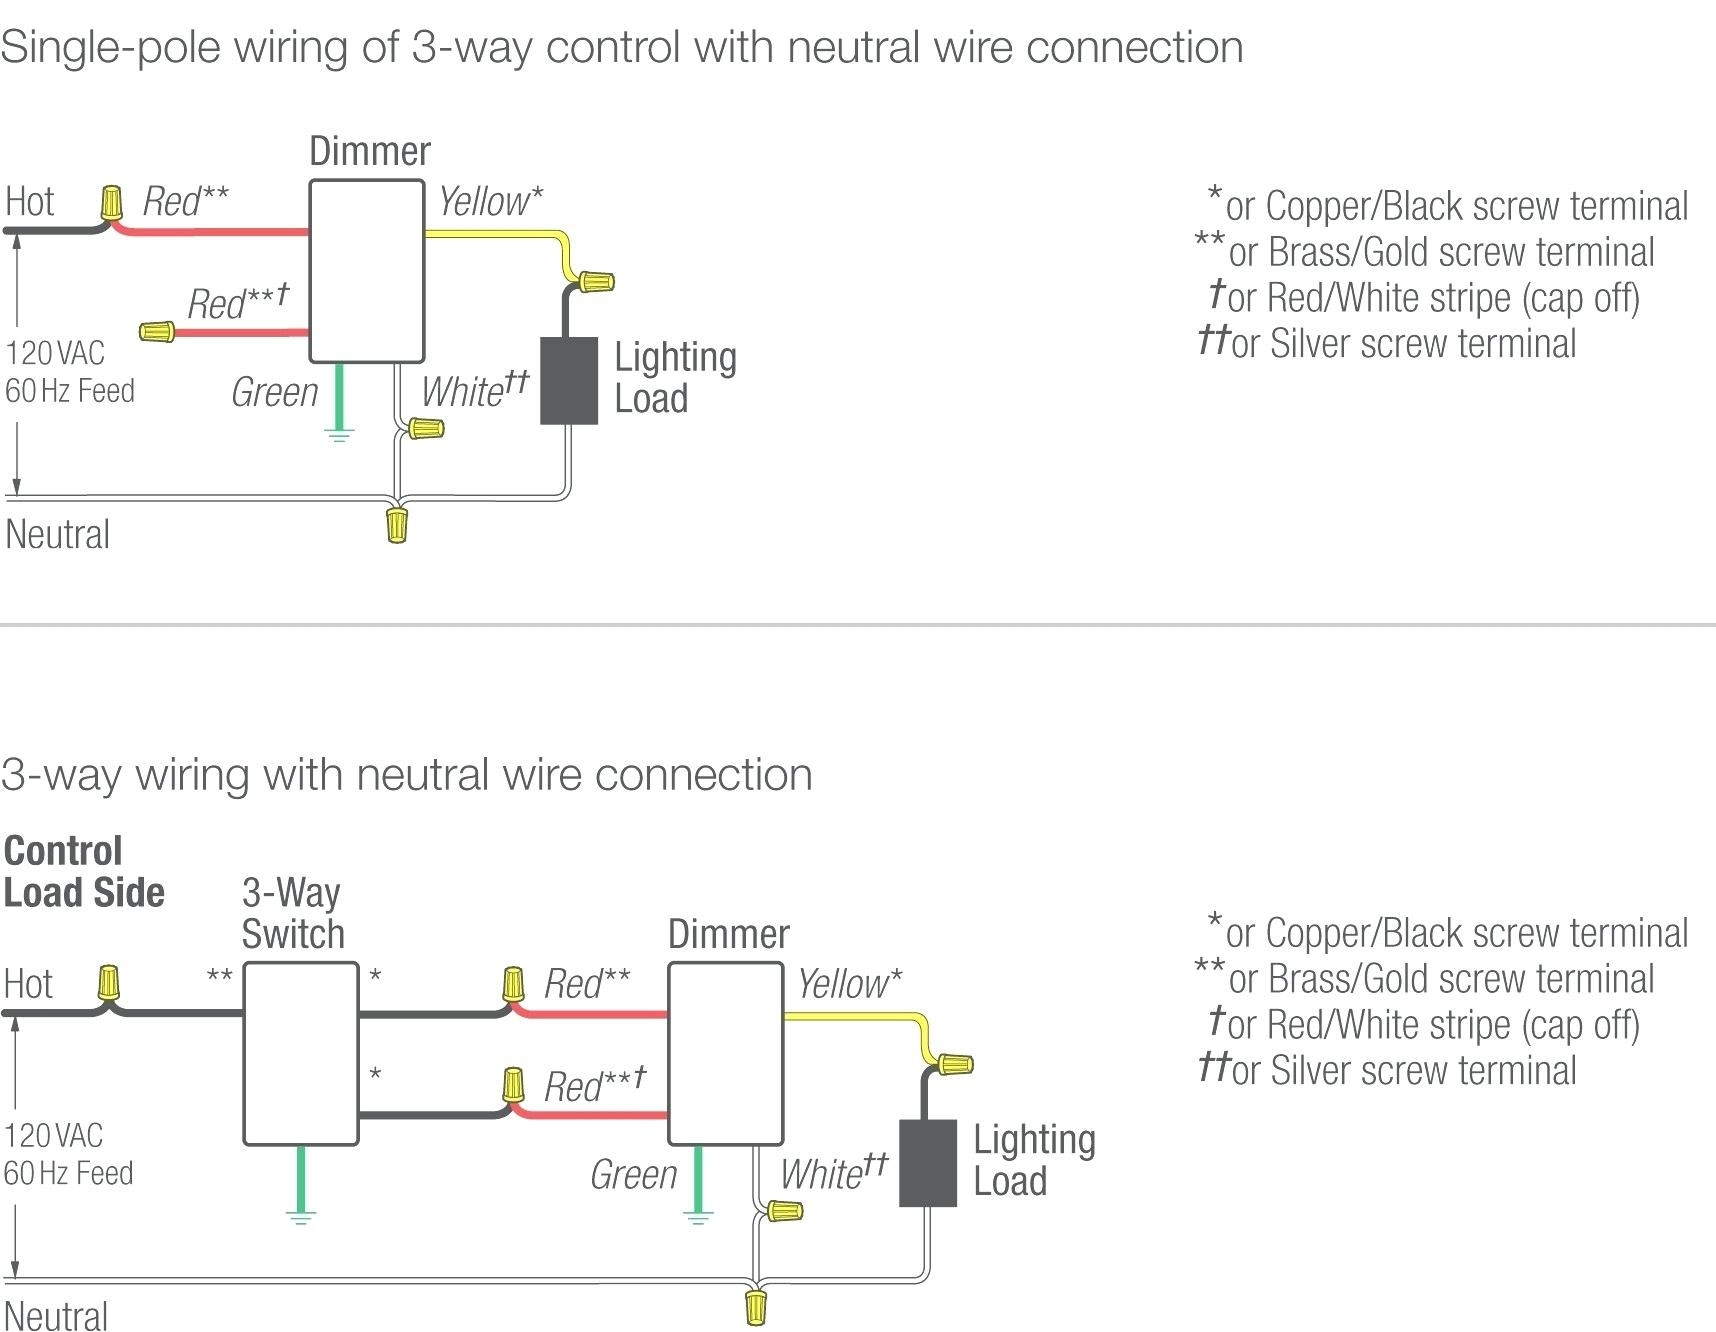 lutron maestro wireless wiring diagram Download-lutron maestro wiring diagram beautiful wiring diagram wiring rh mmanews us PT INR Chart PT INR 15-j